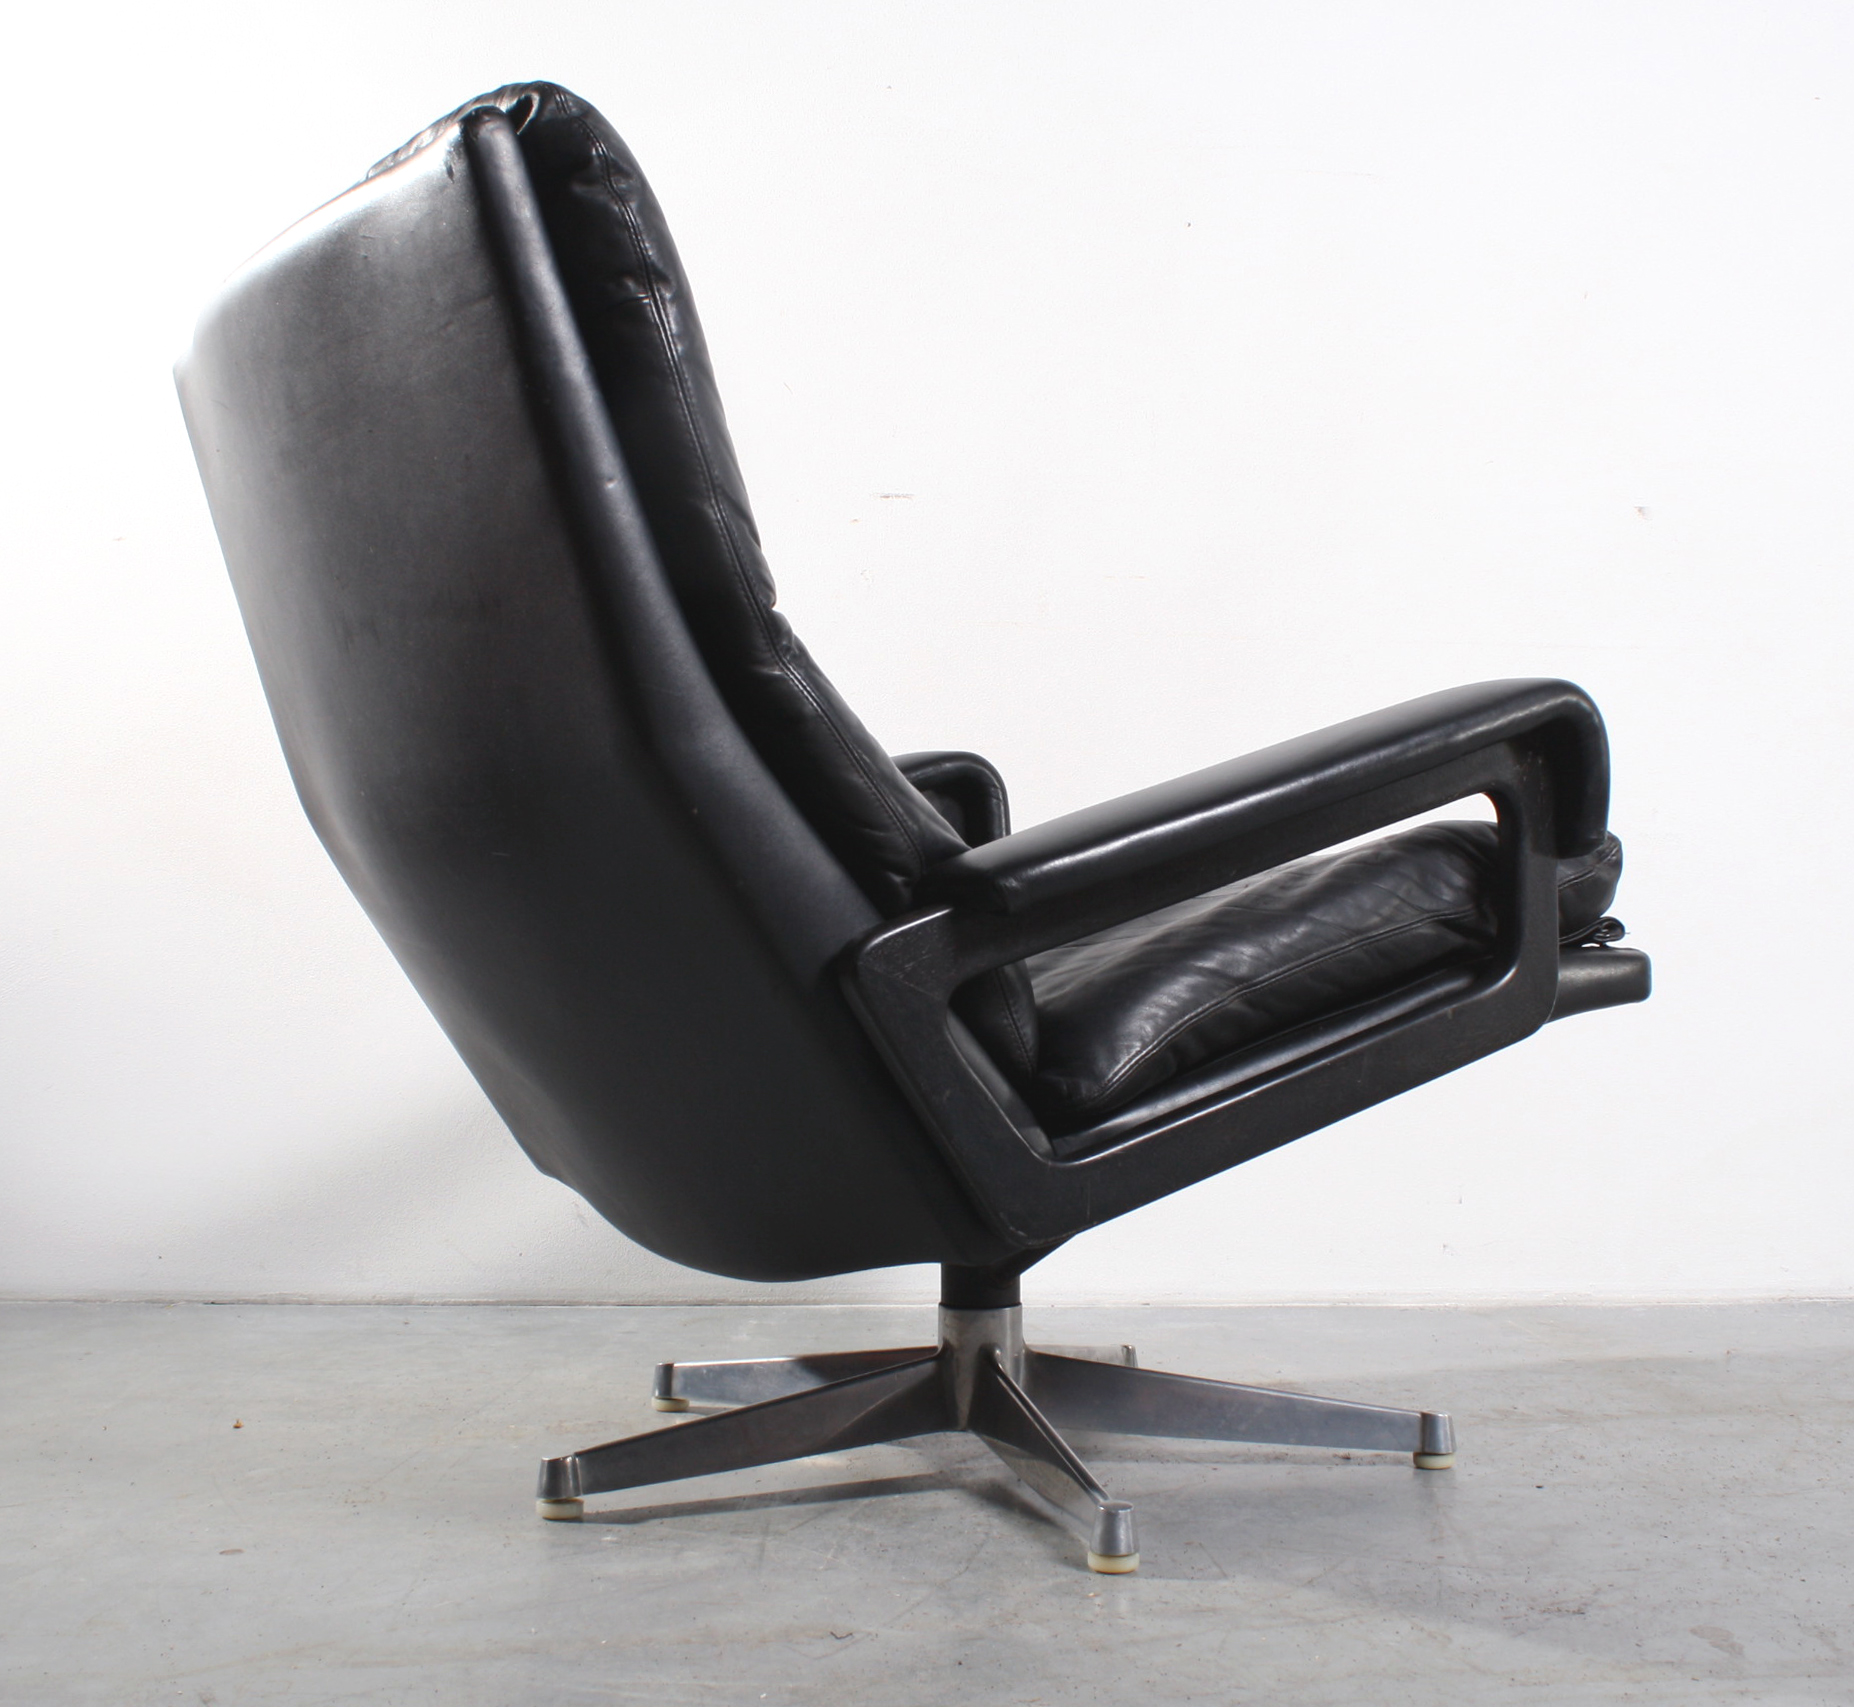 King chair design Strassle fauteuil Andre Vandenbeuck